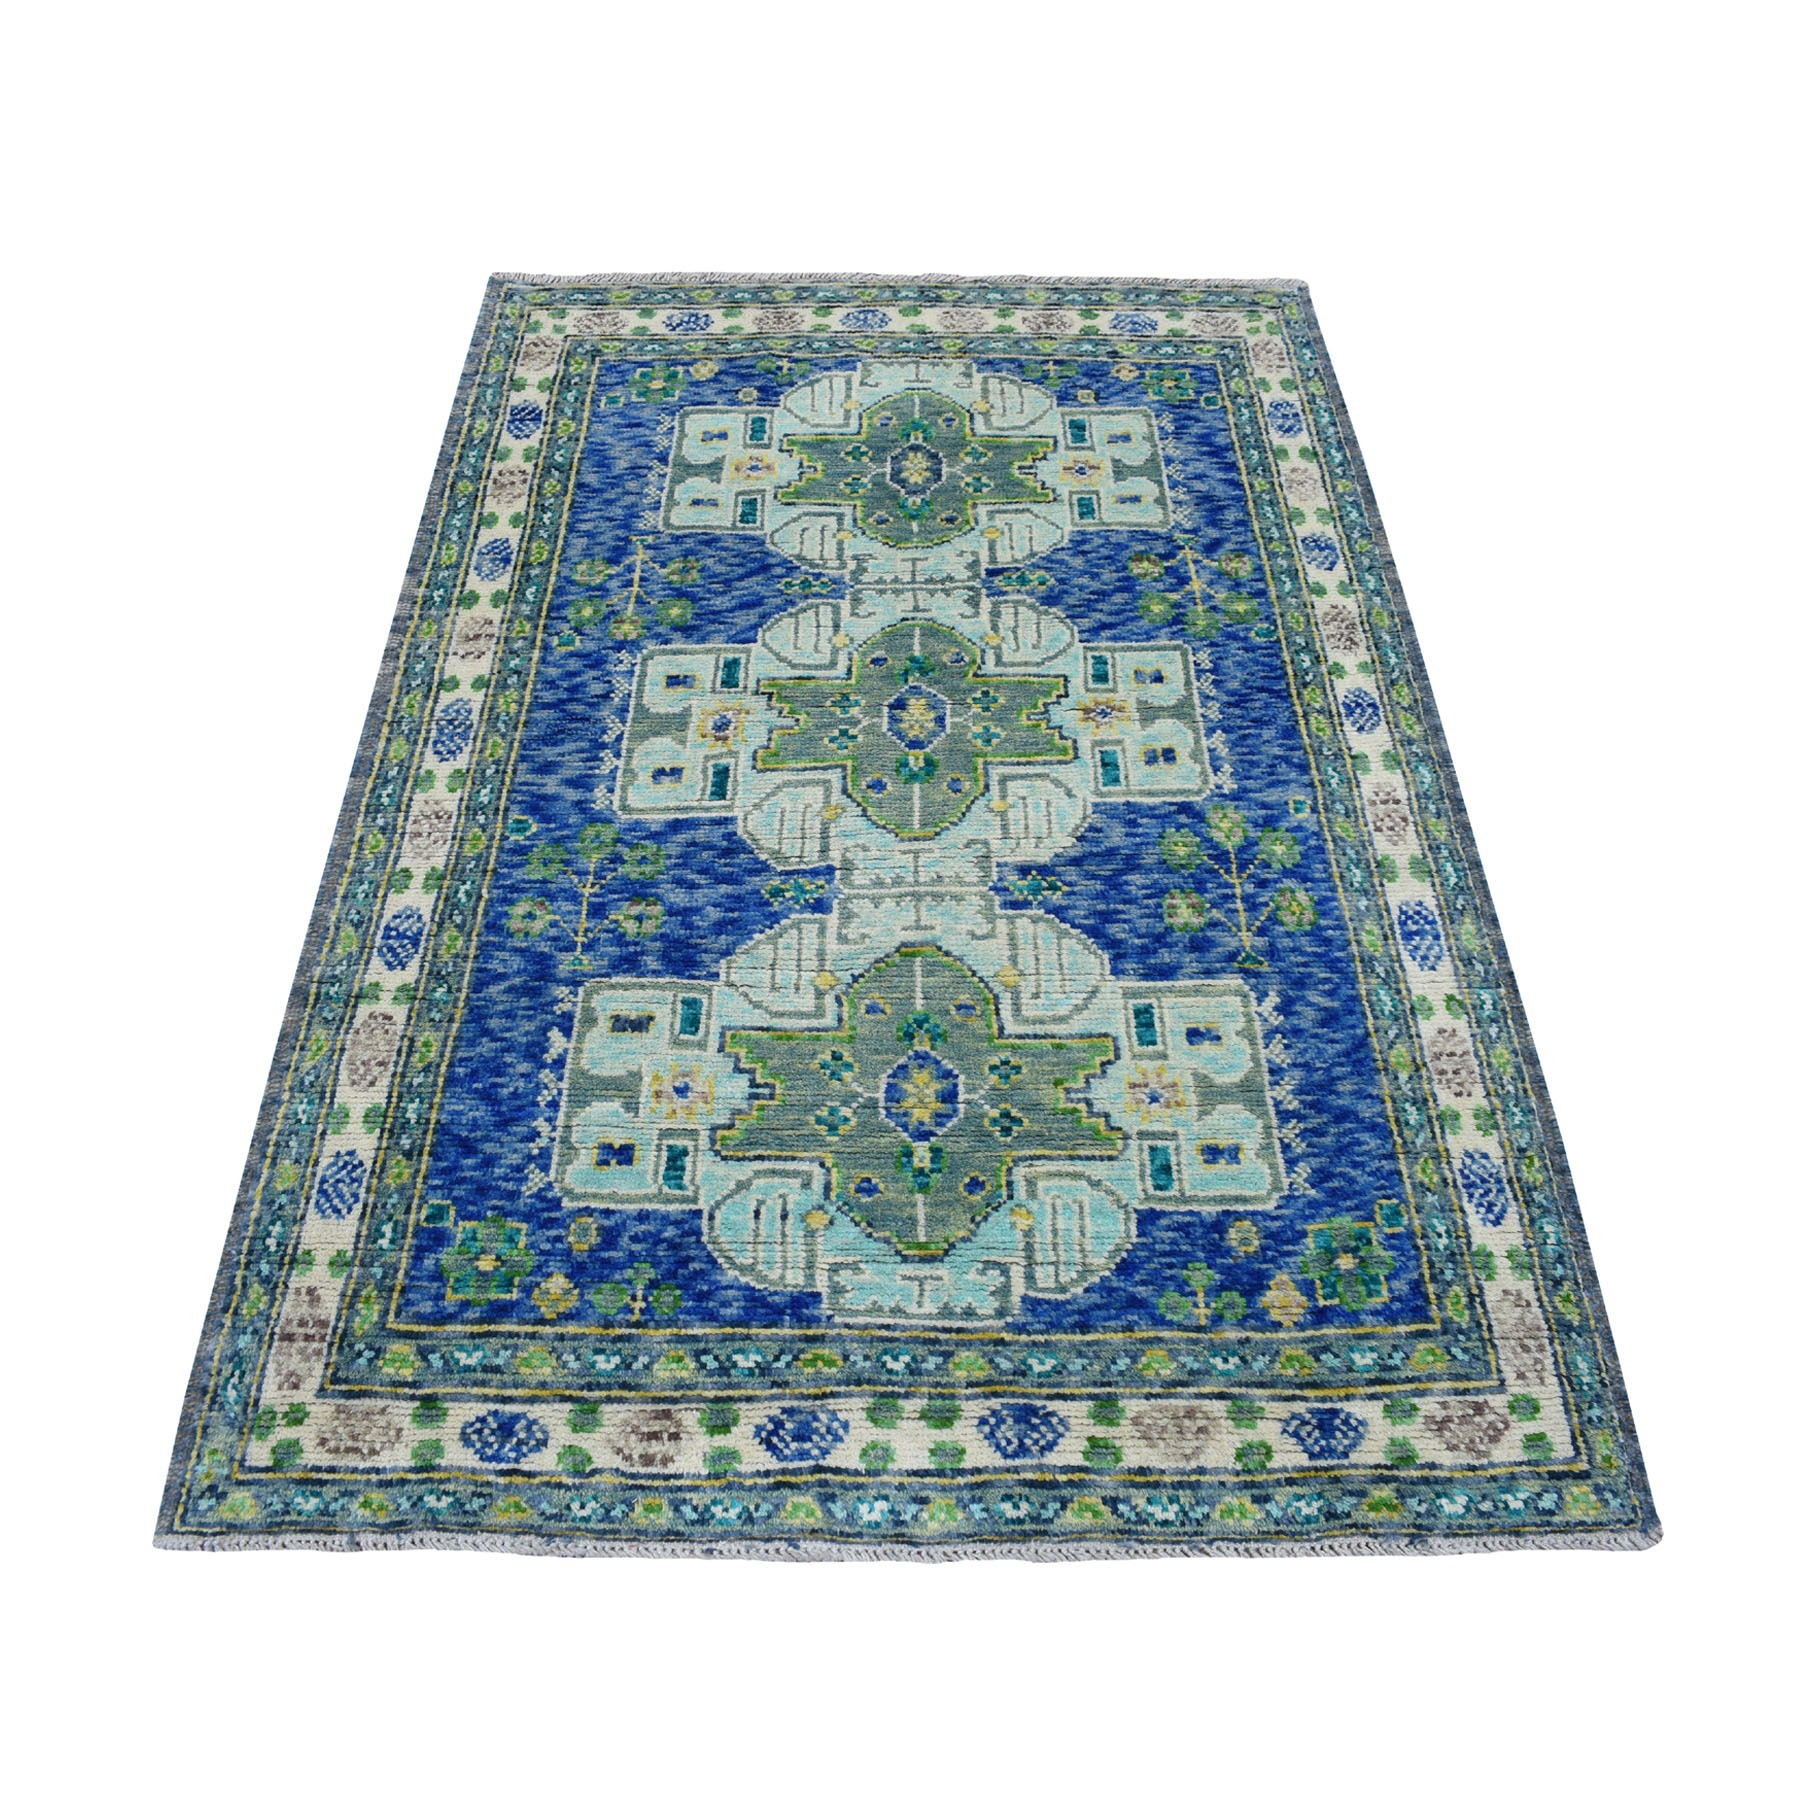 4'X6' Gray Geometric Design Colorful Afghan Baluch Hand Knotted Pure Wool Oriental Rug moaecad0